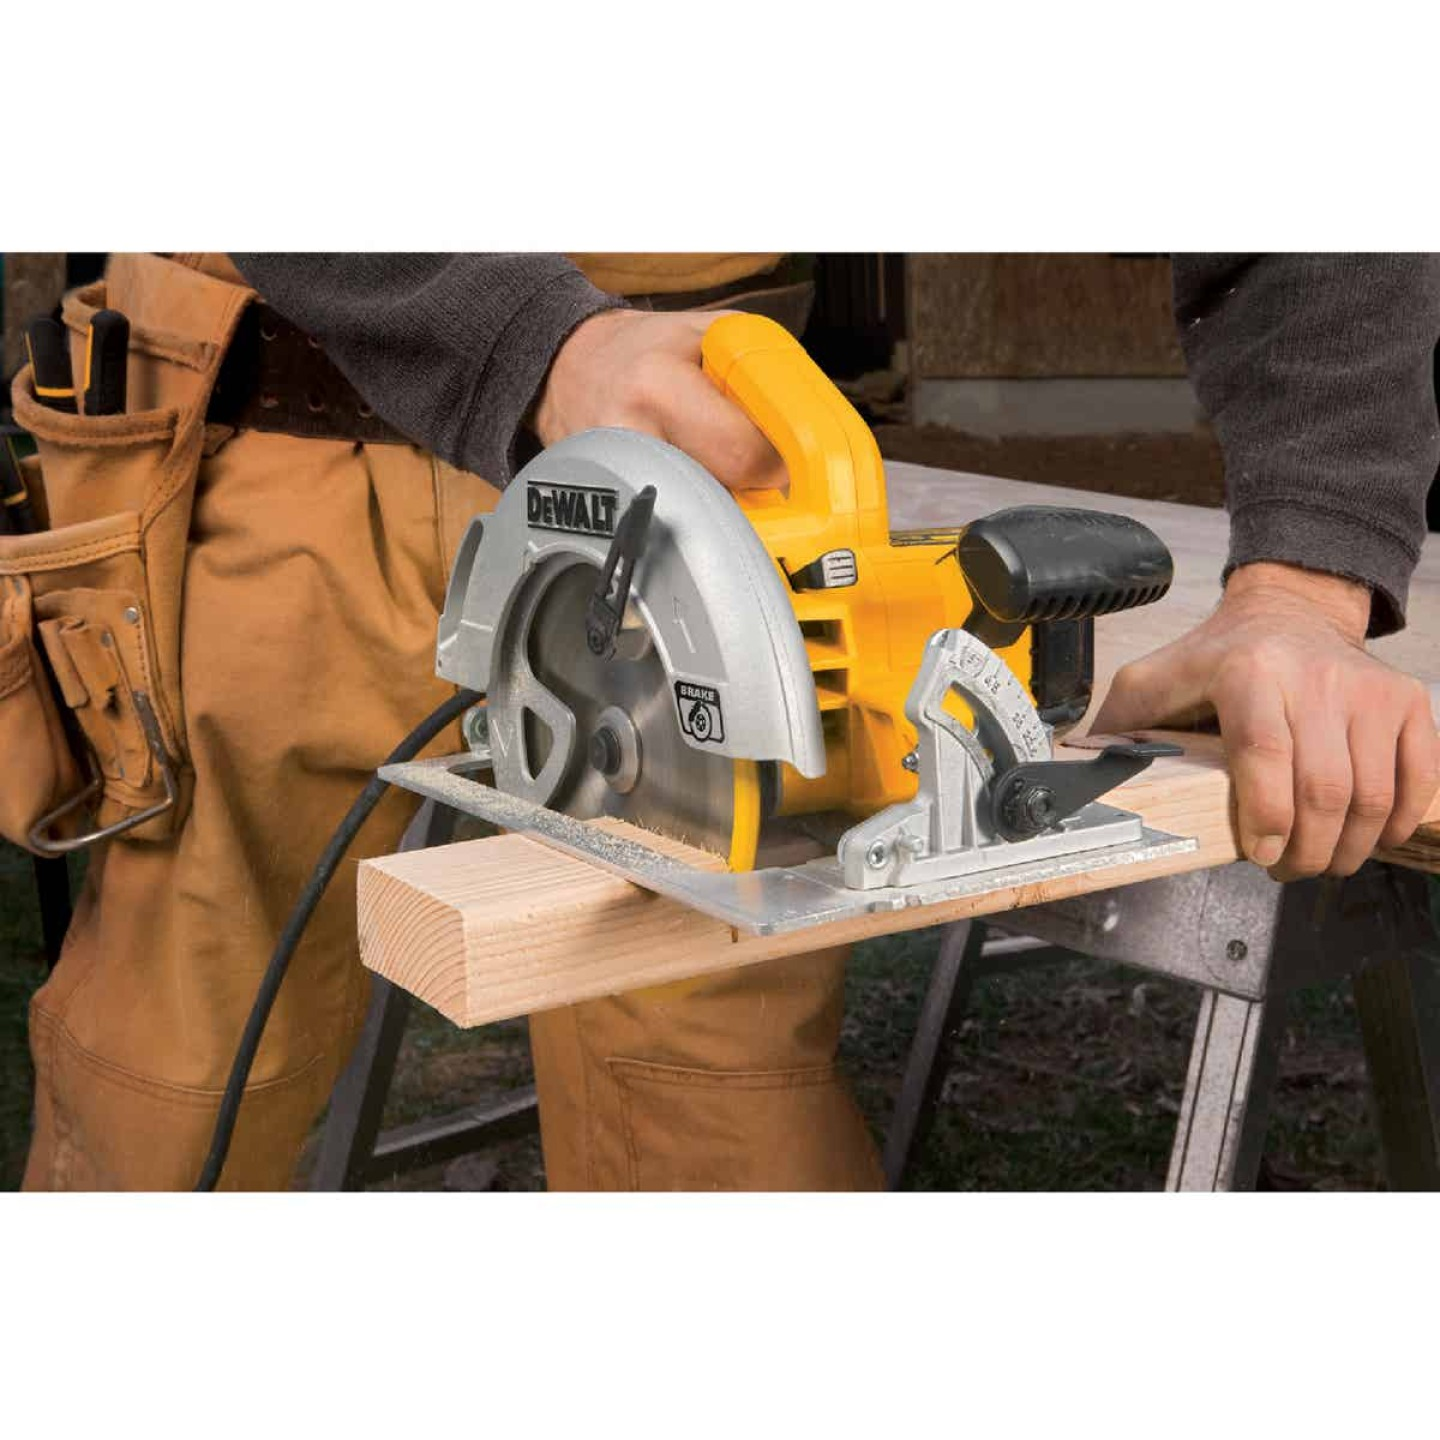 DeWalt 7-1/4 In. 15-Amp Lightweight Circular Saw Image 2